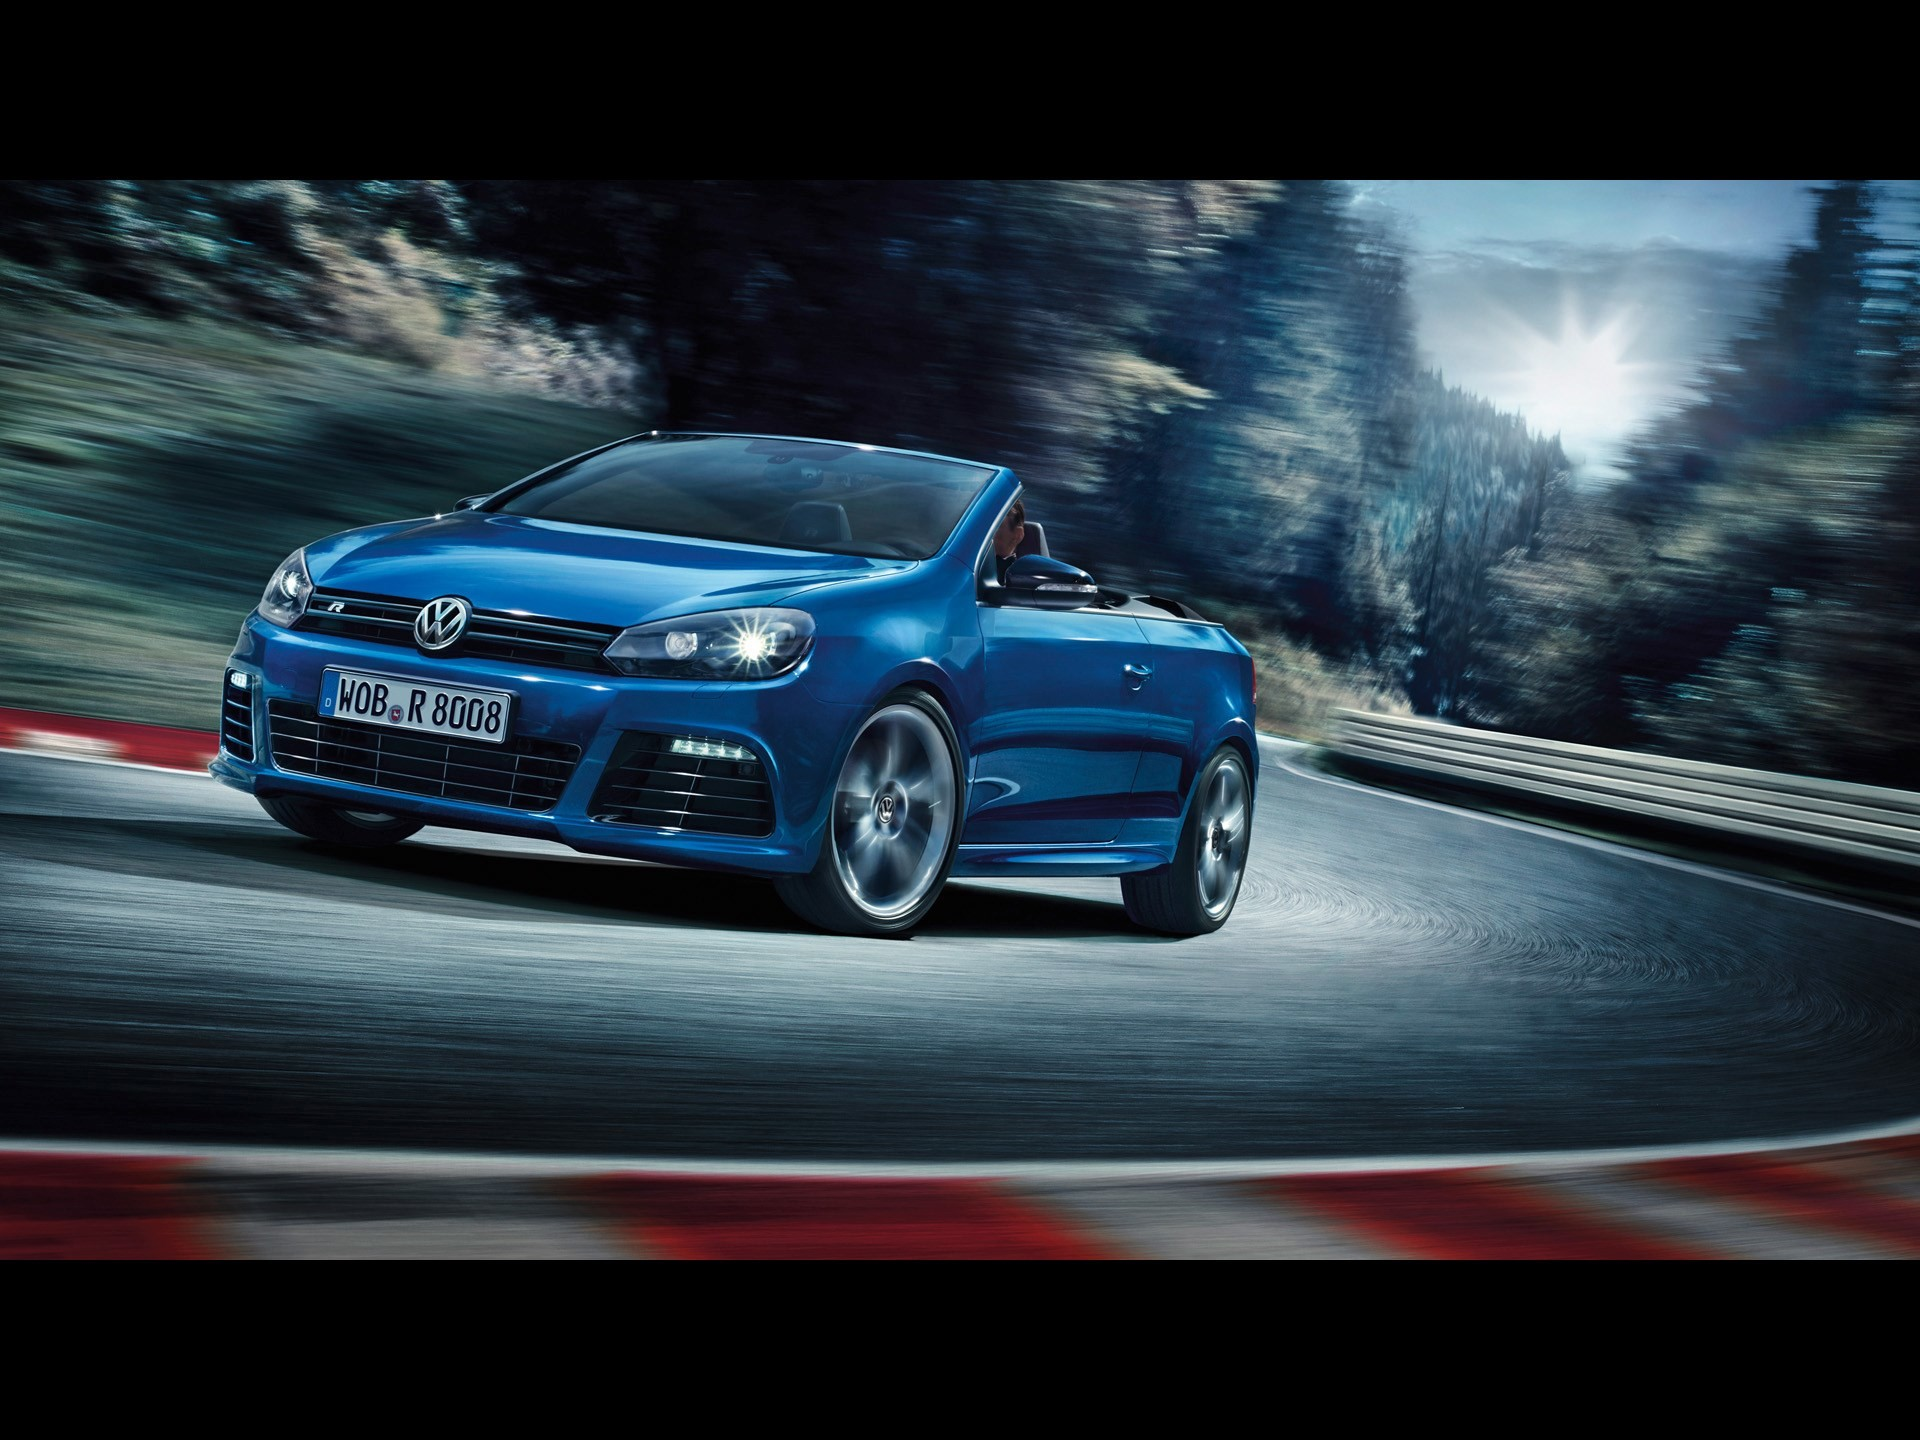 free screensaver wallpapers for 2013 volkswagen golf r cabriolet